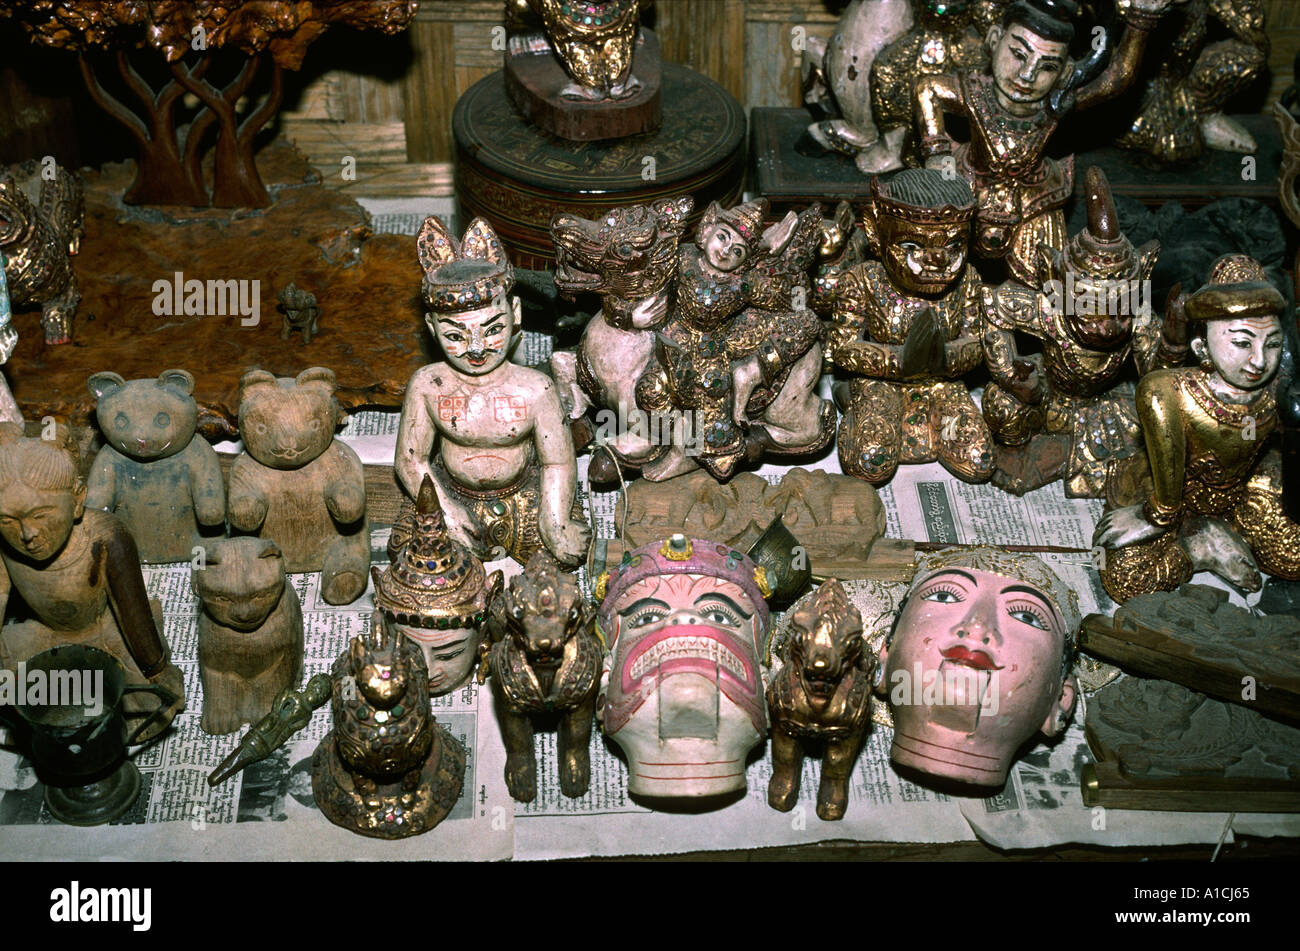 Myanmar Burma Mandalay crafts selection of old and new carvings by Winn Myint Stock Photo